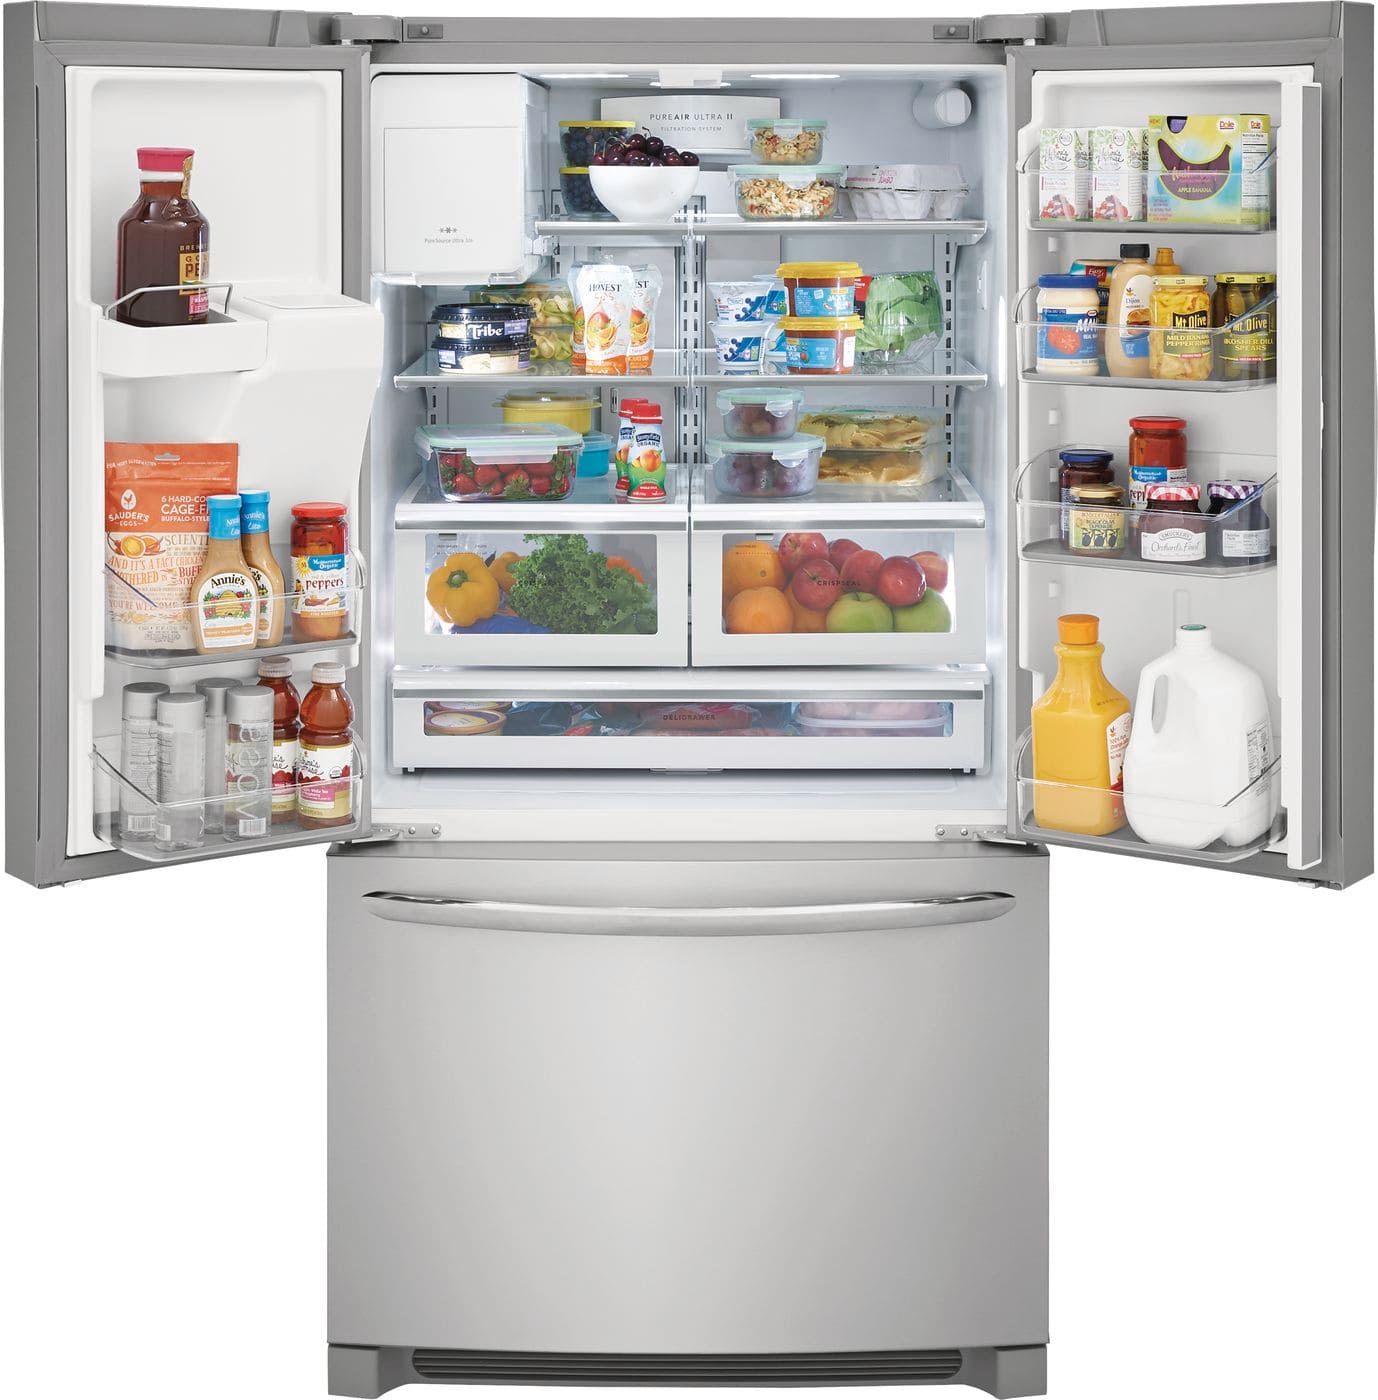 Model: FGHD2368TF | 21.7 Cu. Ft. Counter-Depth French Door Refrigerator